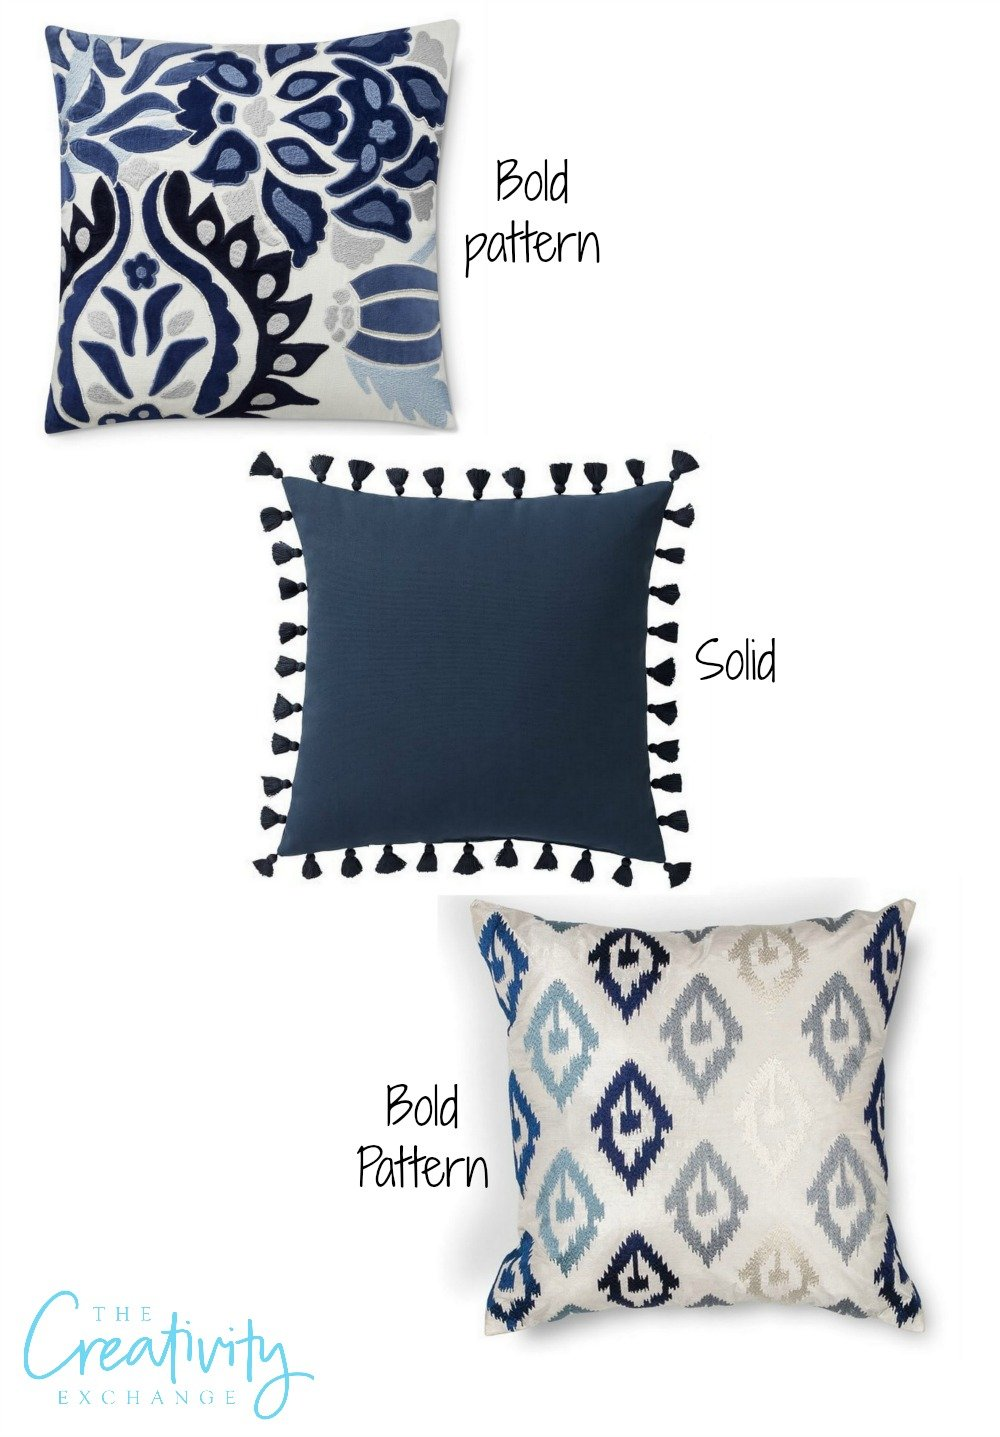 Tips for layering pillow and fabric patterns and colors